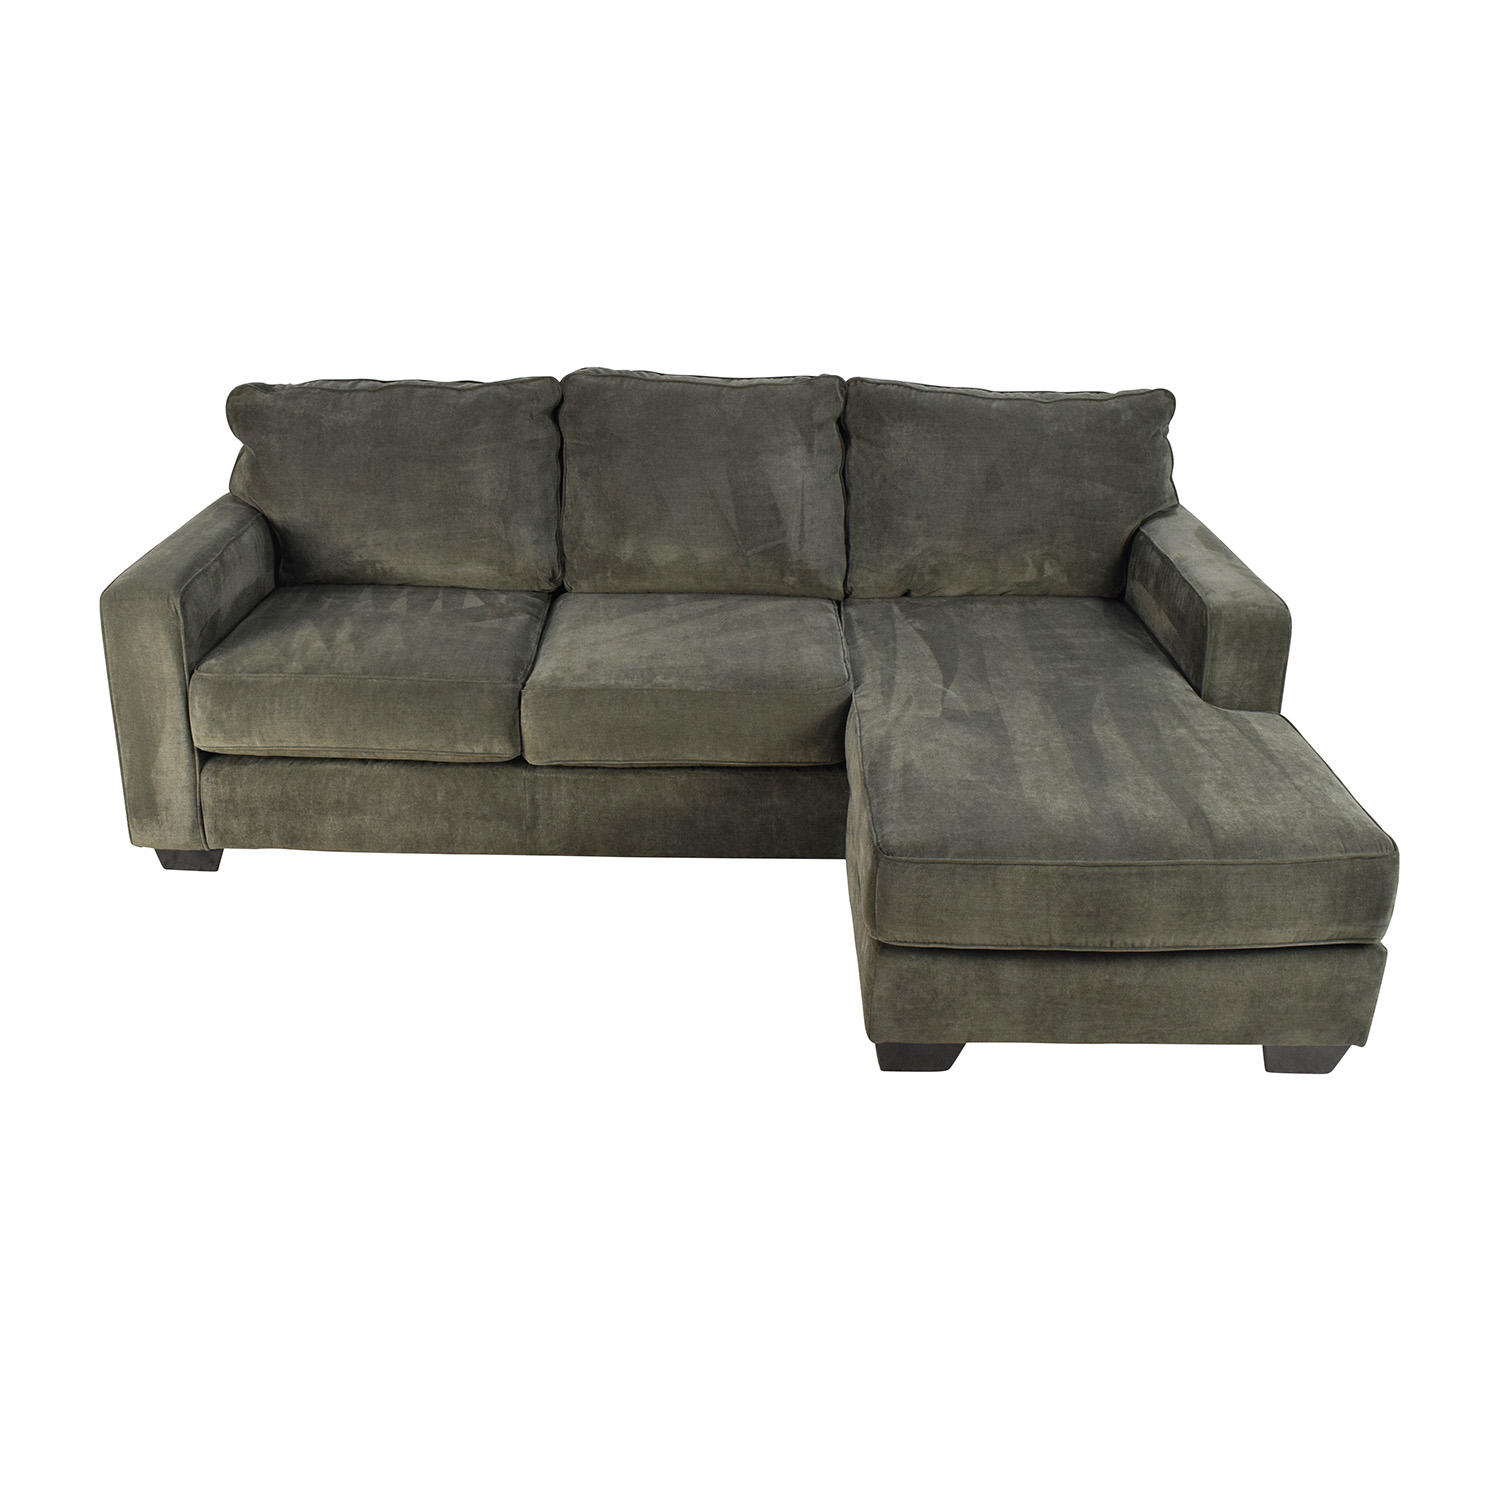 shop Jennifer Convertibles Sectional Sofa Jennifer Convertibles